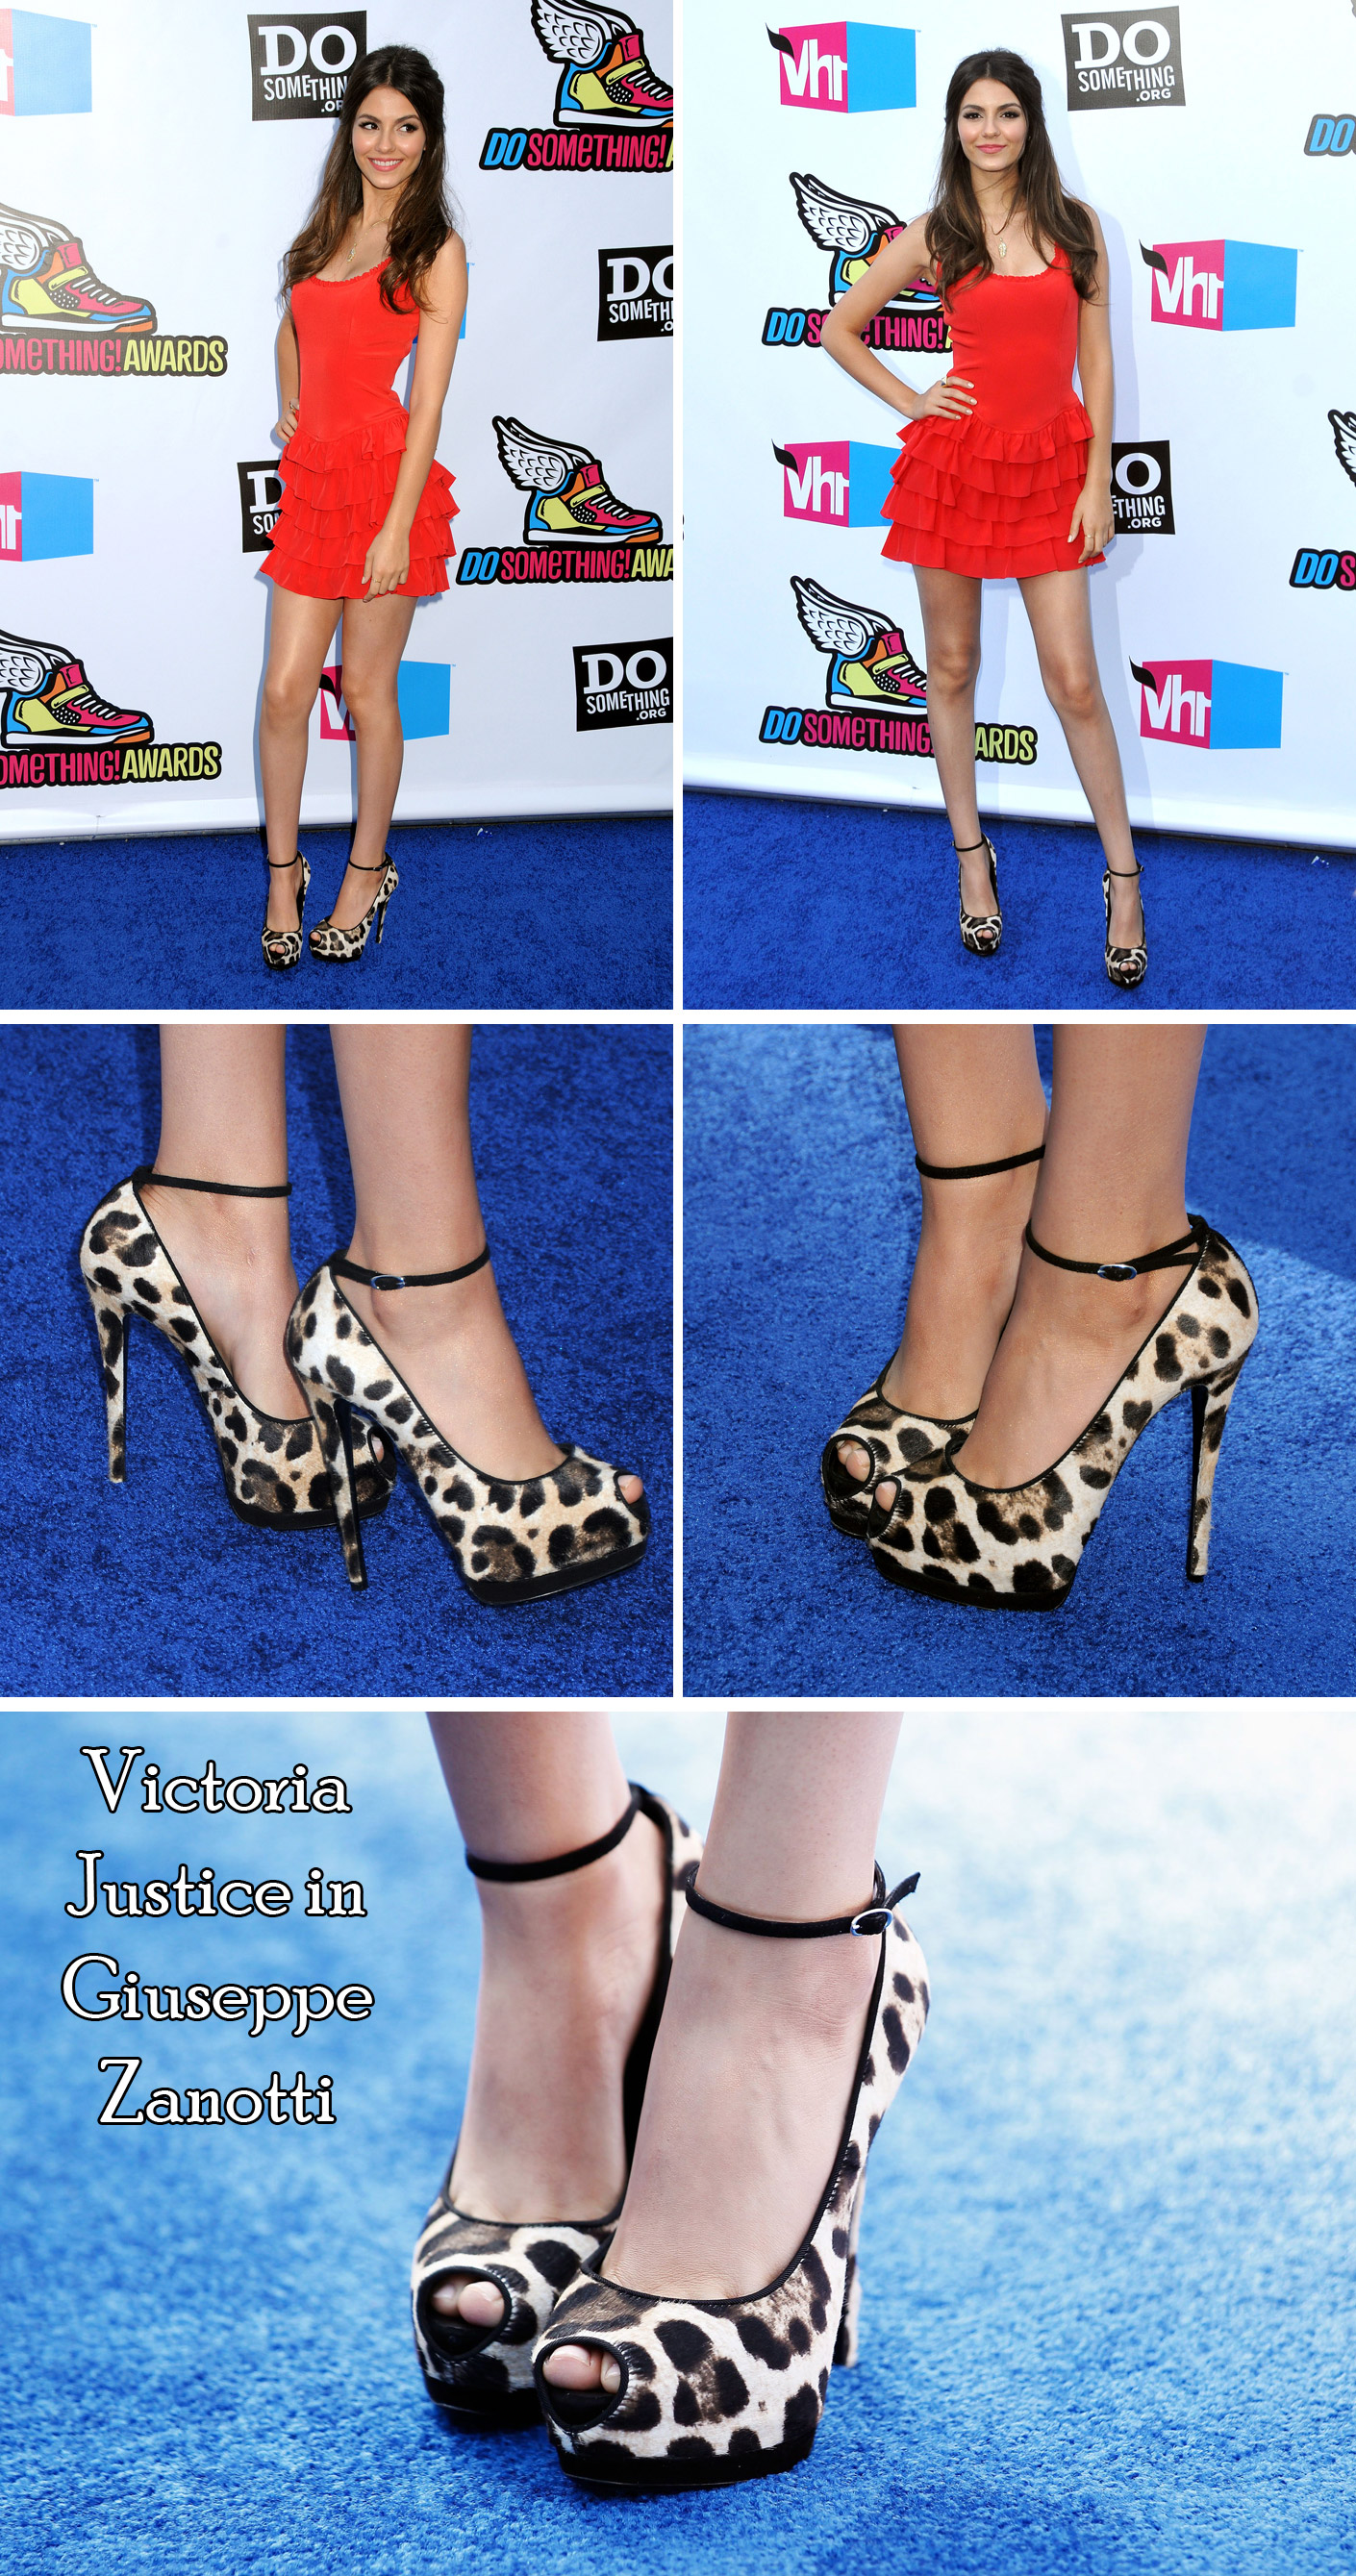 Victoria JusticeThe High Page Heel Times 2 zpSVUM